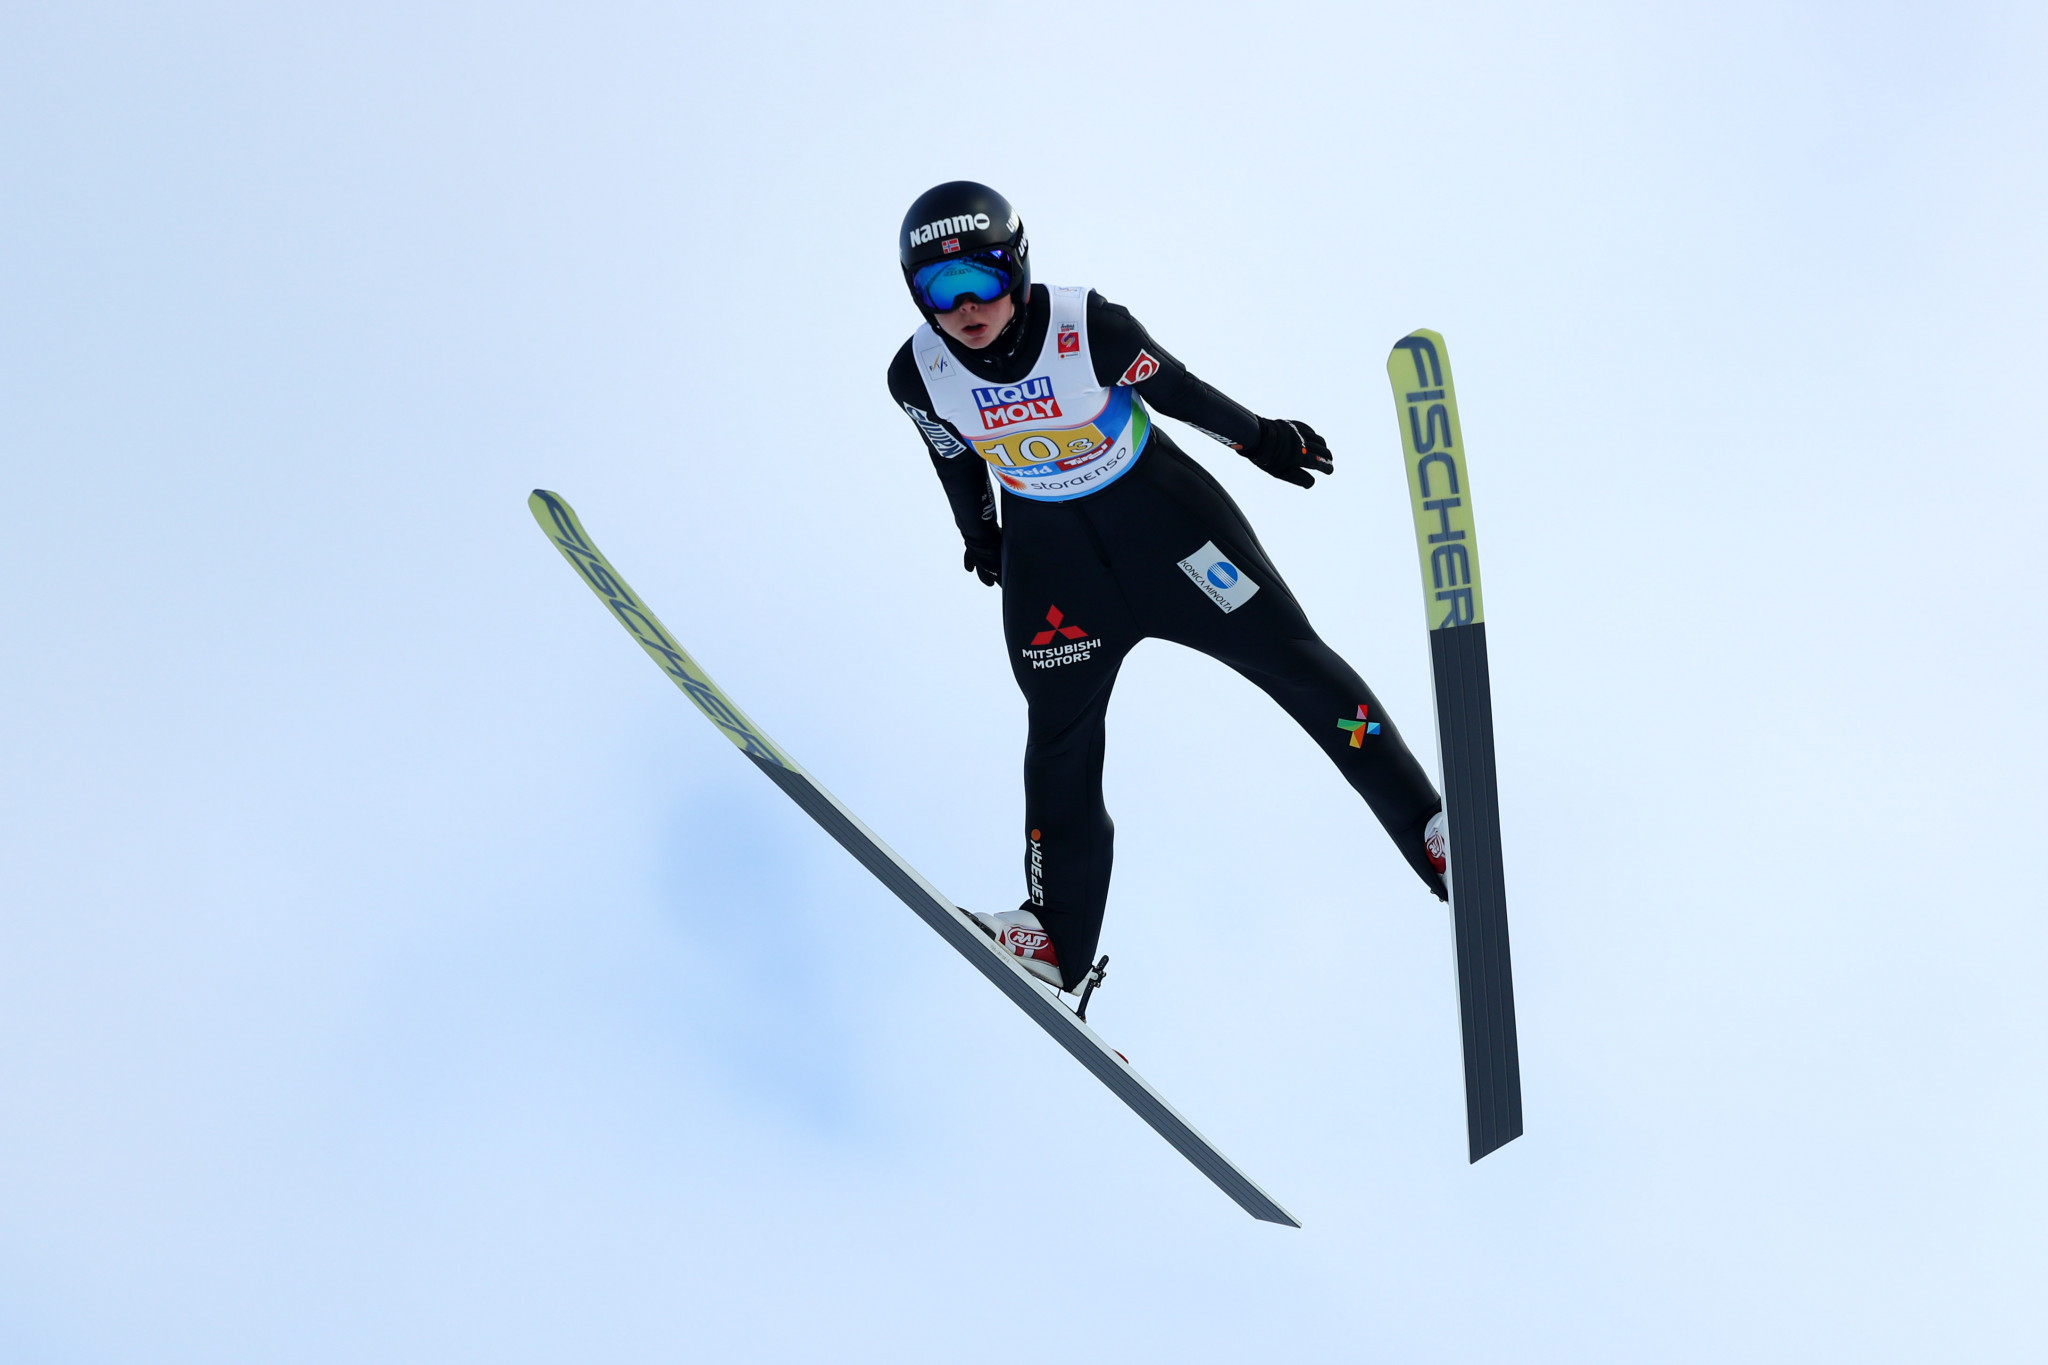 Norway's Lundby takes FIS Ski Jumping World Cup title with second place finish in Nizhny Tagil